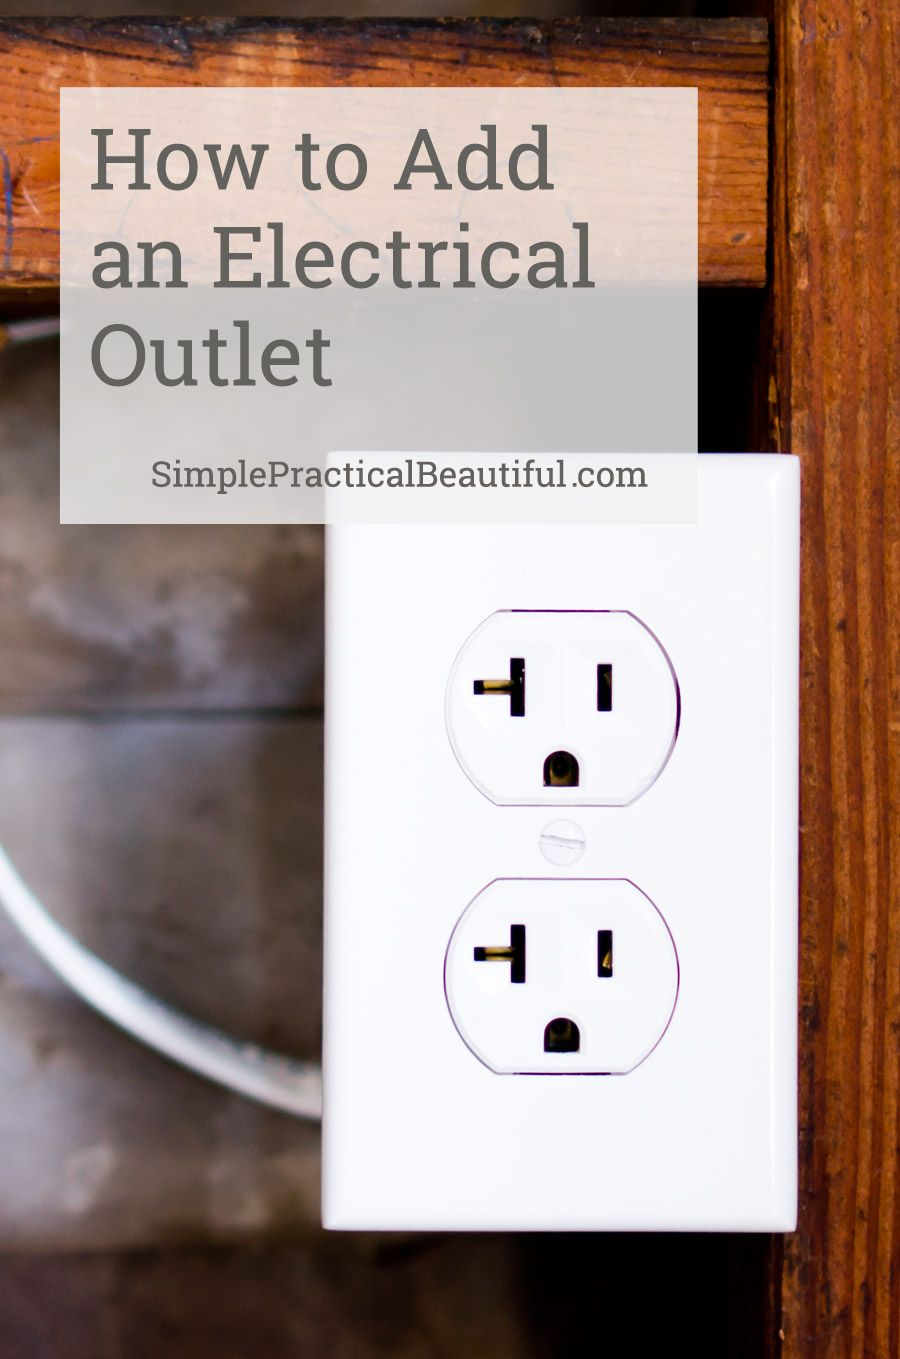 How to add an electrical outlet | Pinterest | Electrical outlets ...